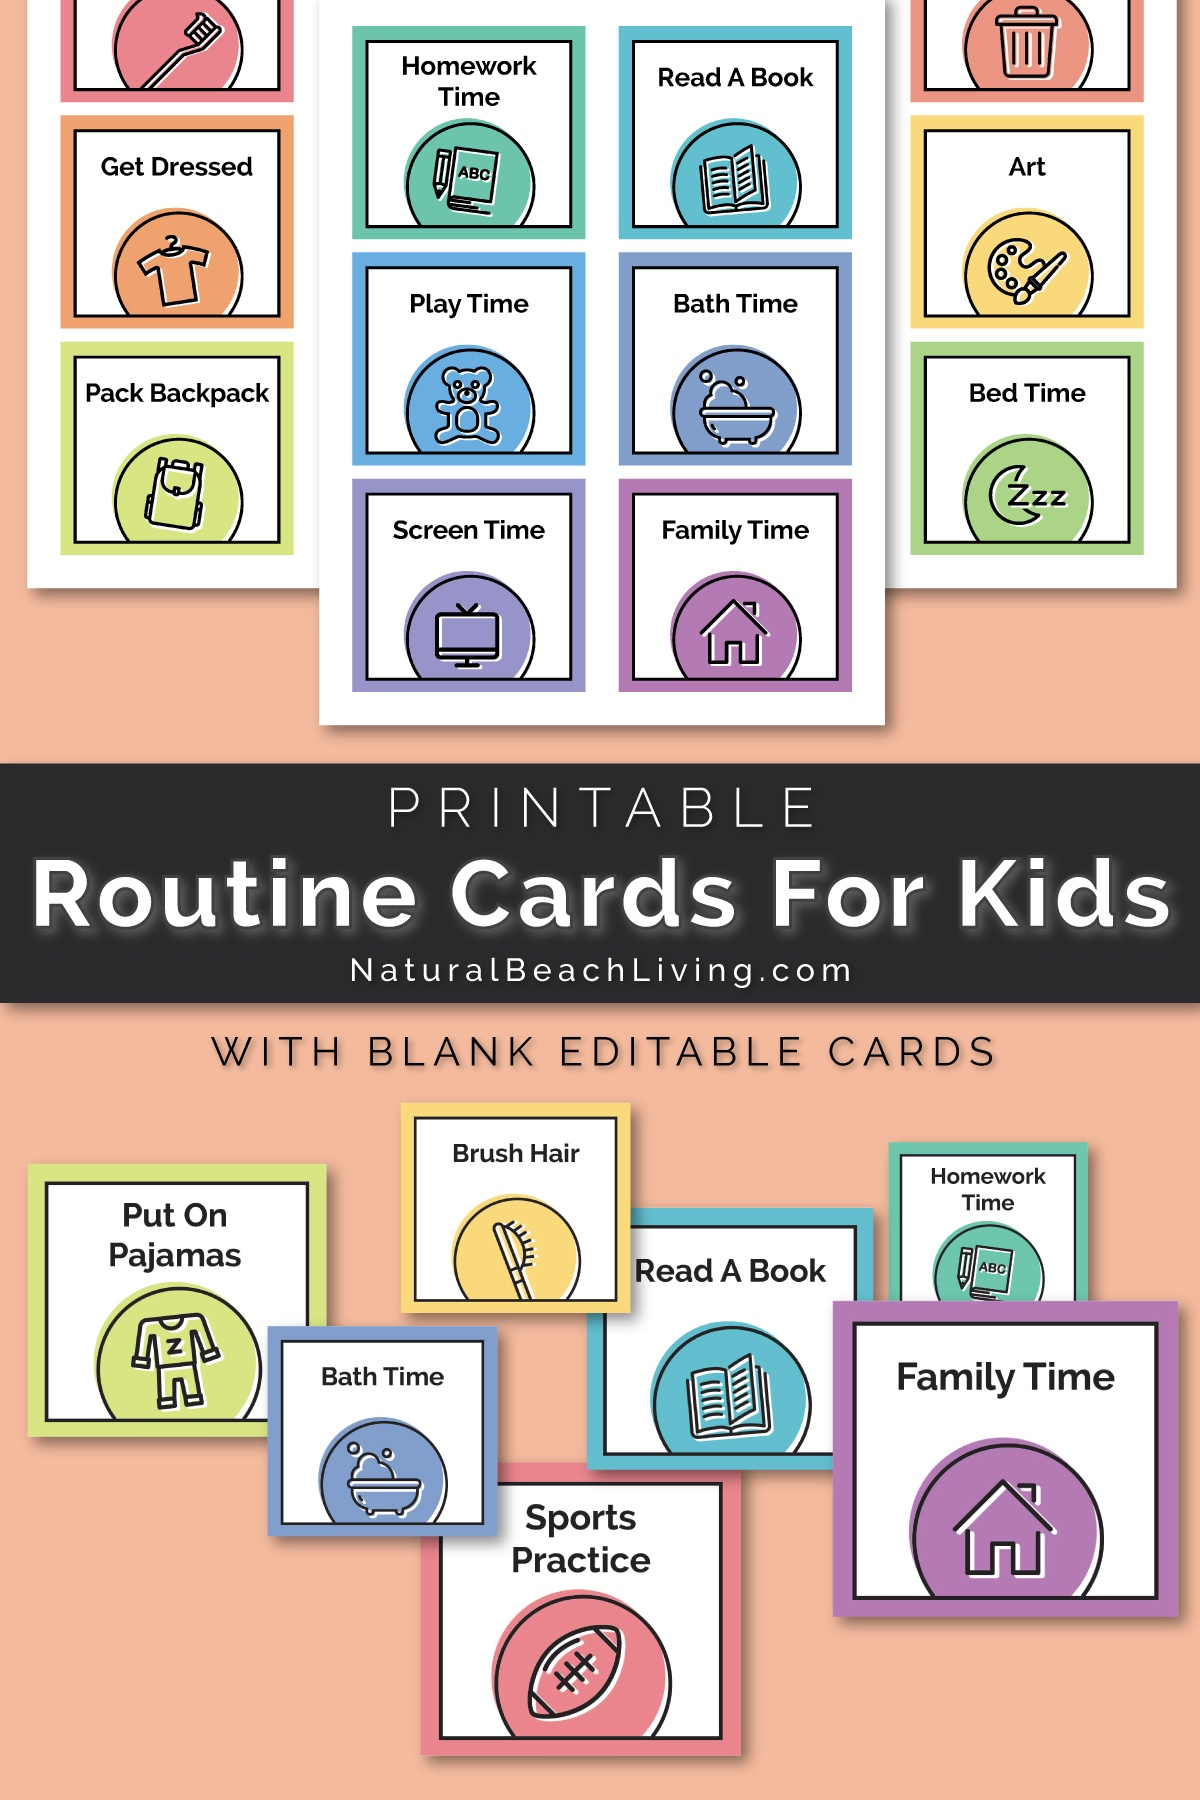 Visual Schedule - Free Printable Routine Cards - Natural Beach Living - Free Printable Schedule Cards